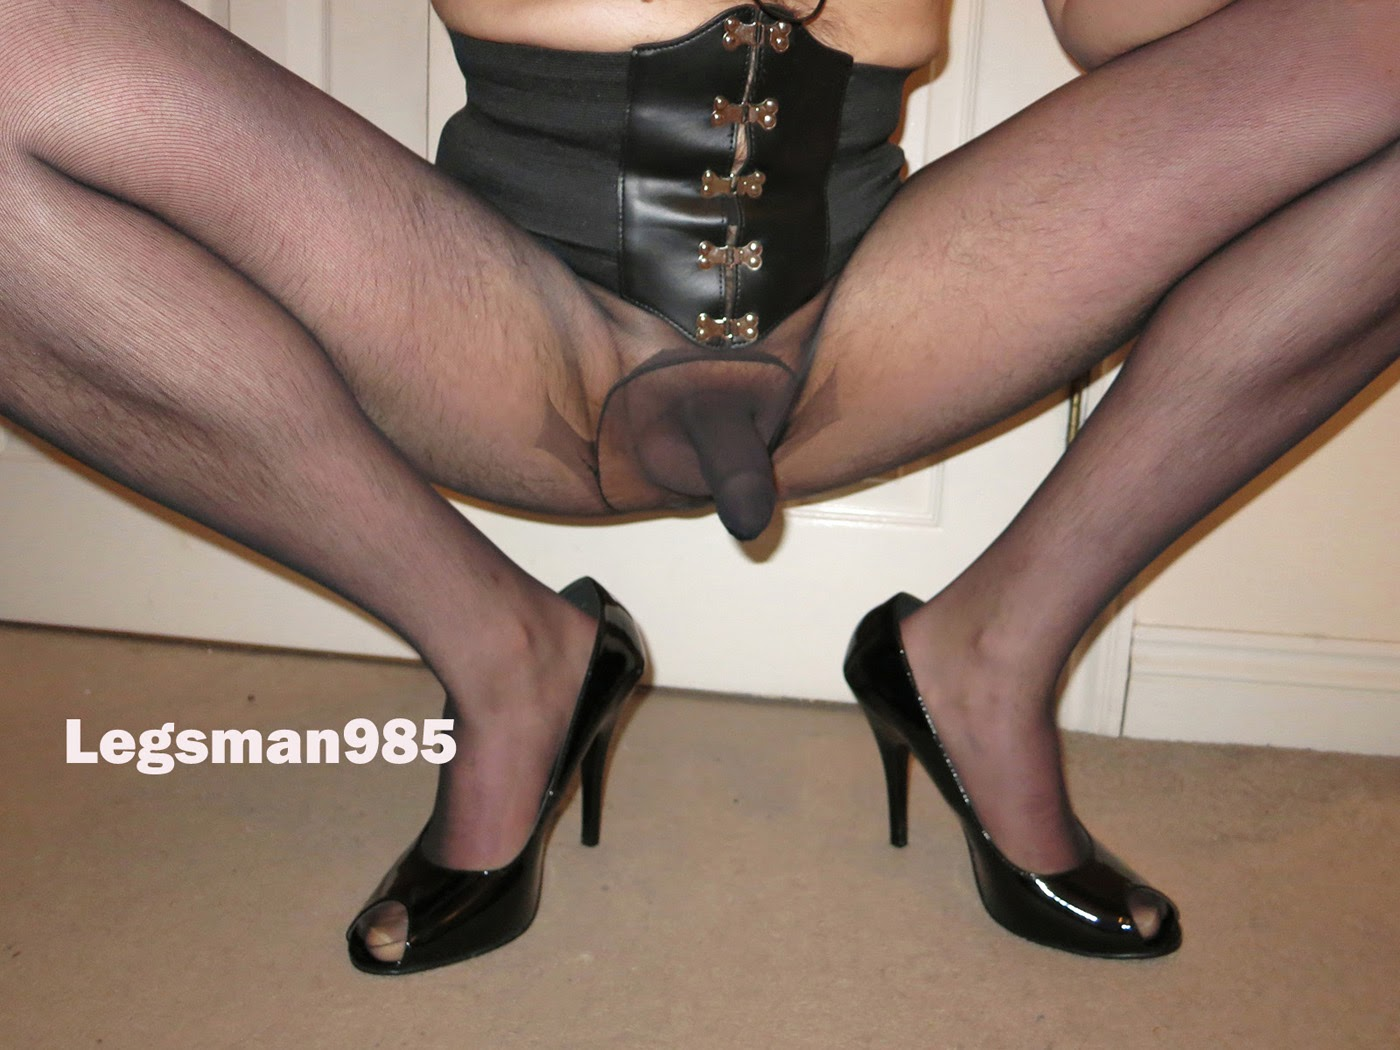 pantyhose with sheath